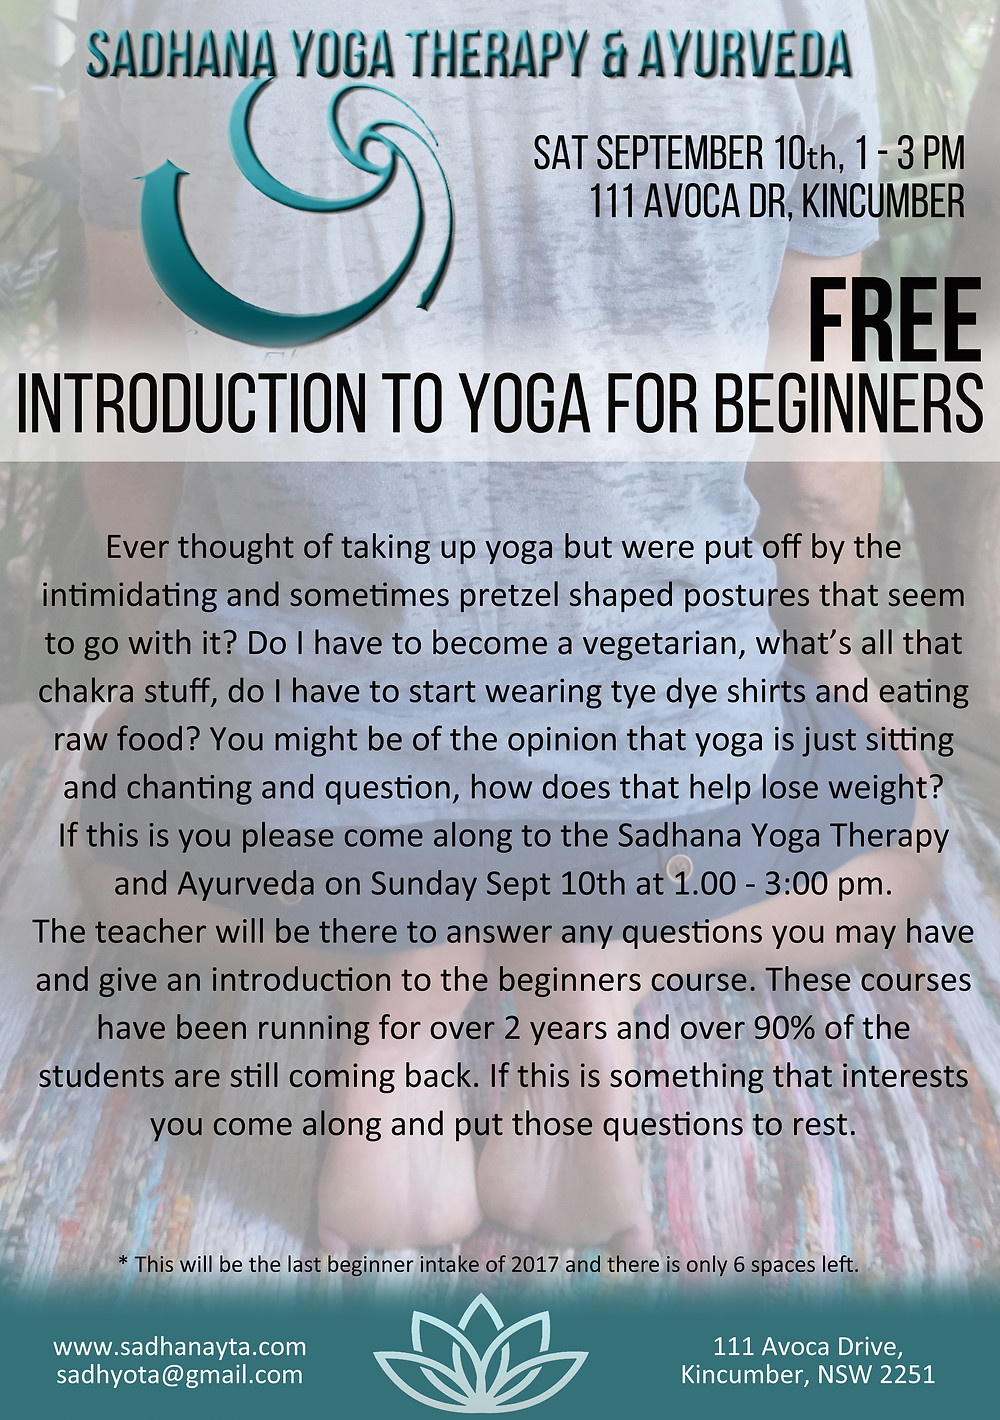 introduction to yoga with a free class on sept 10th 1-2